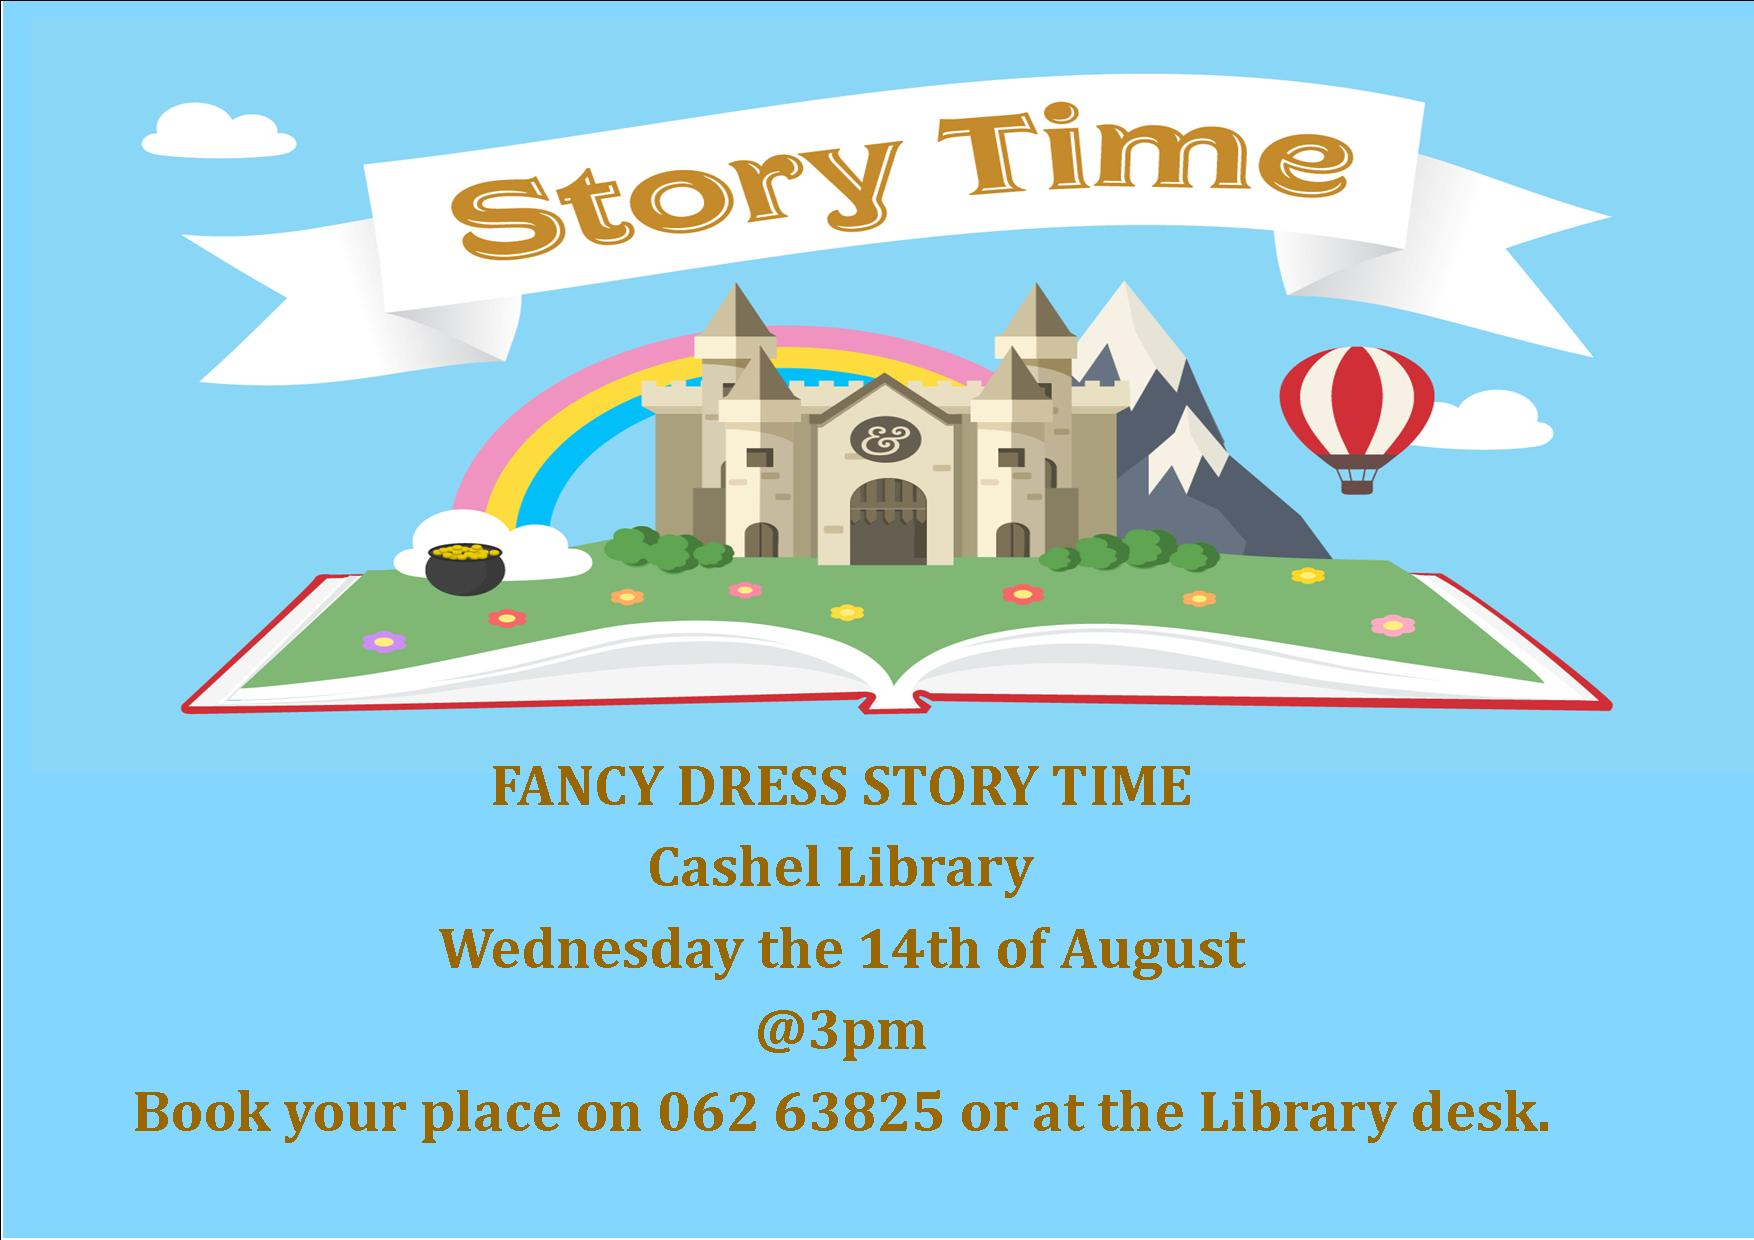 Fancy Dress Storytime in Cashel Library